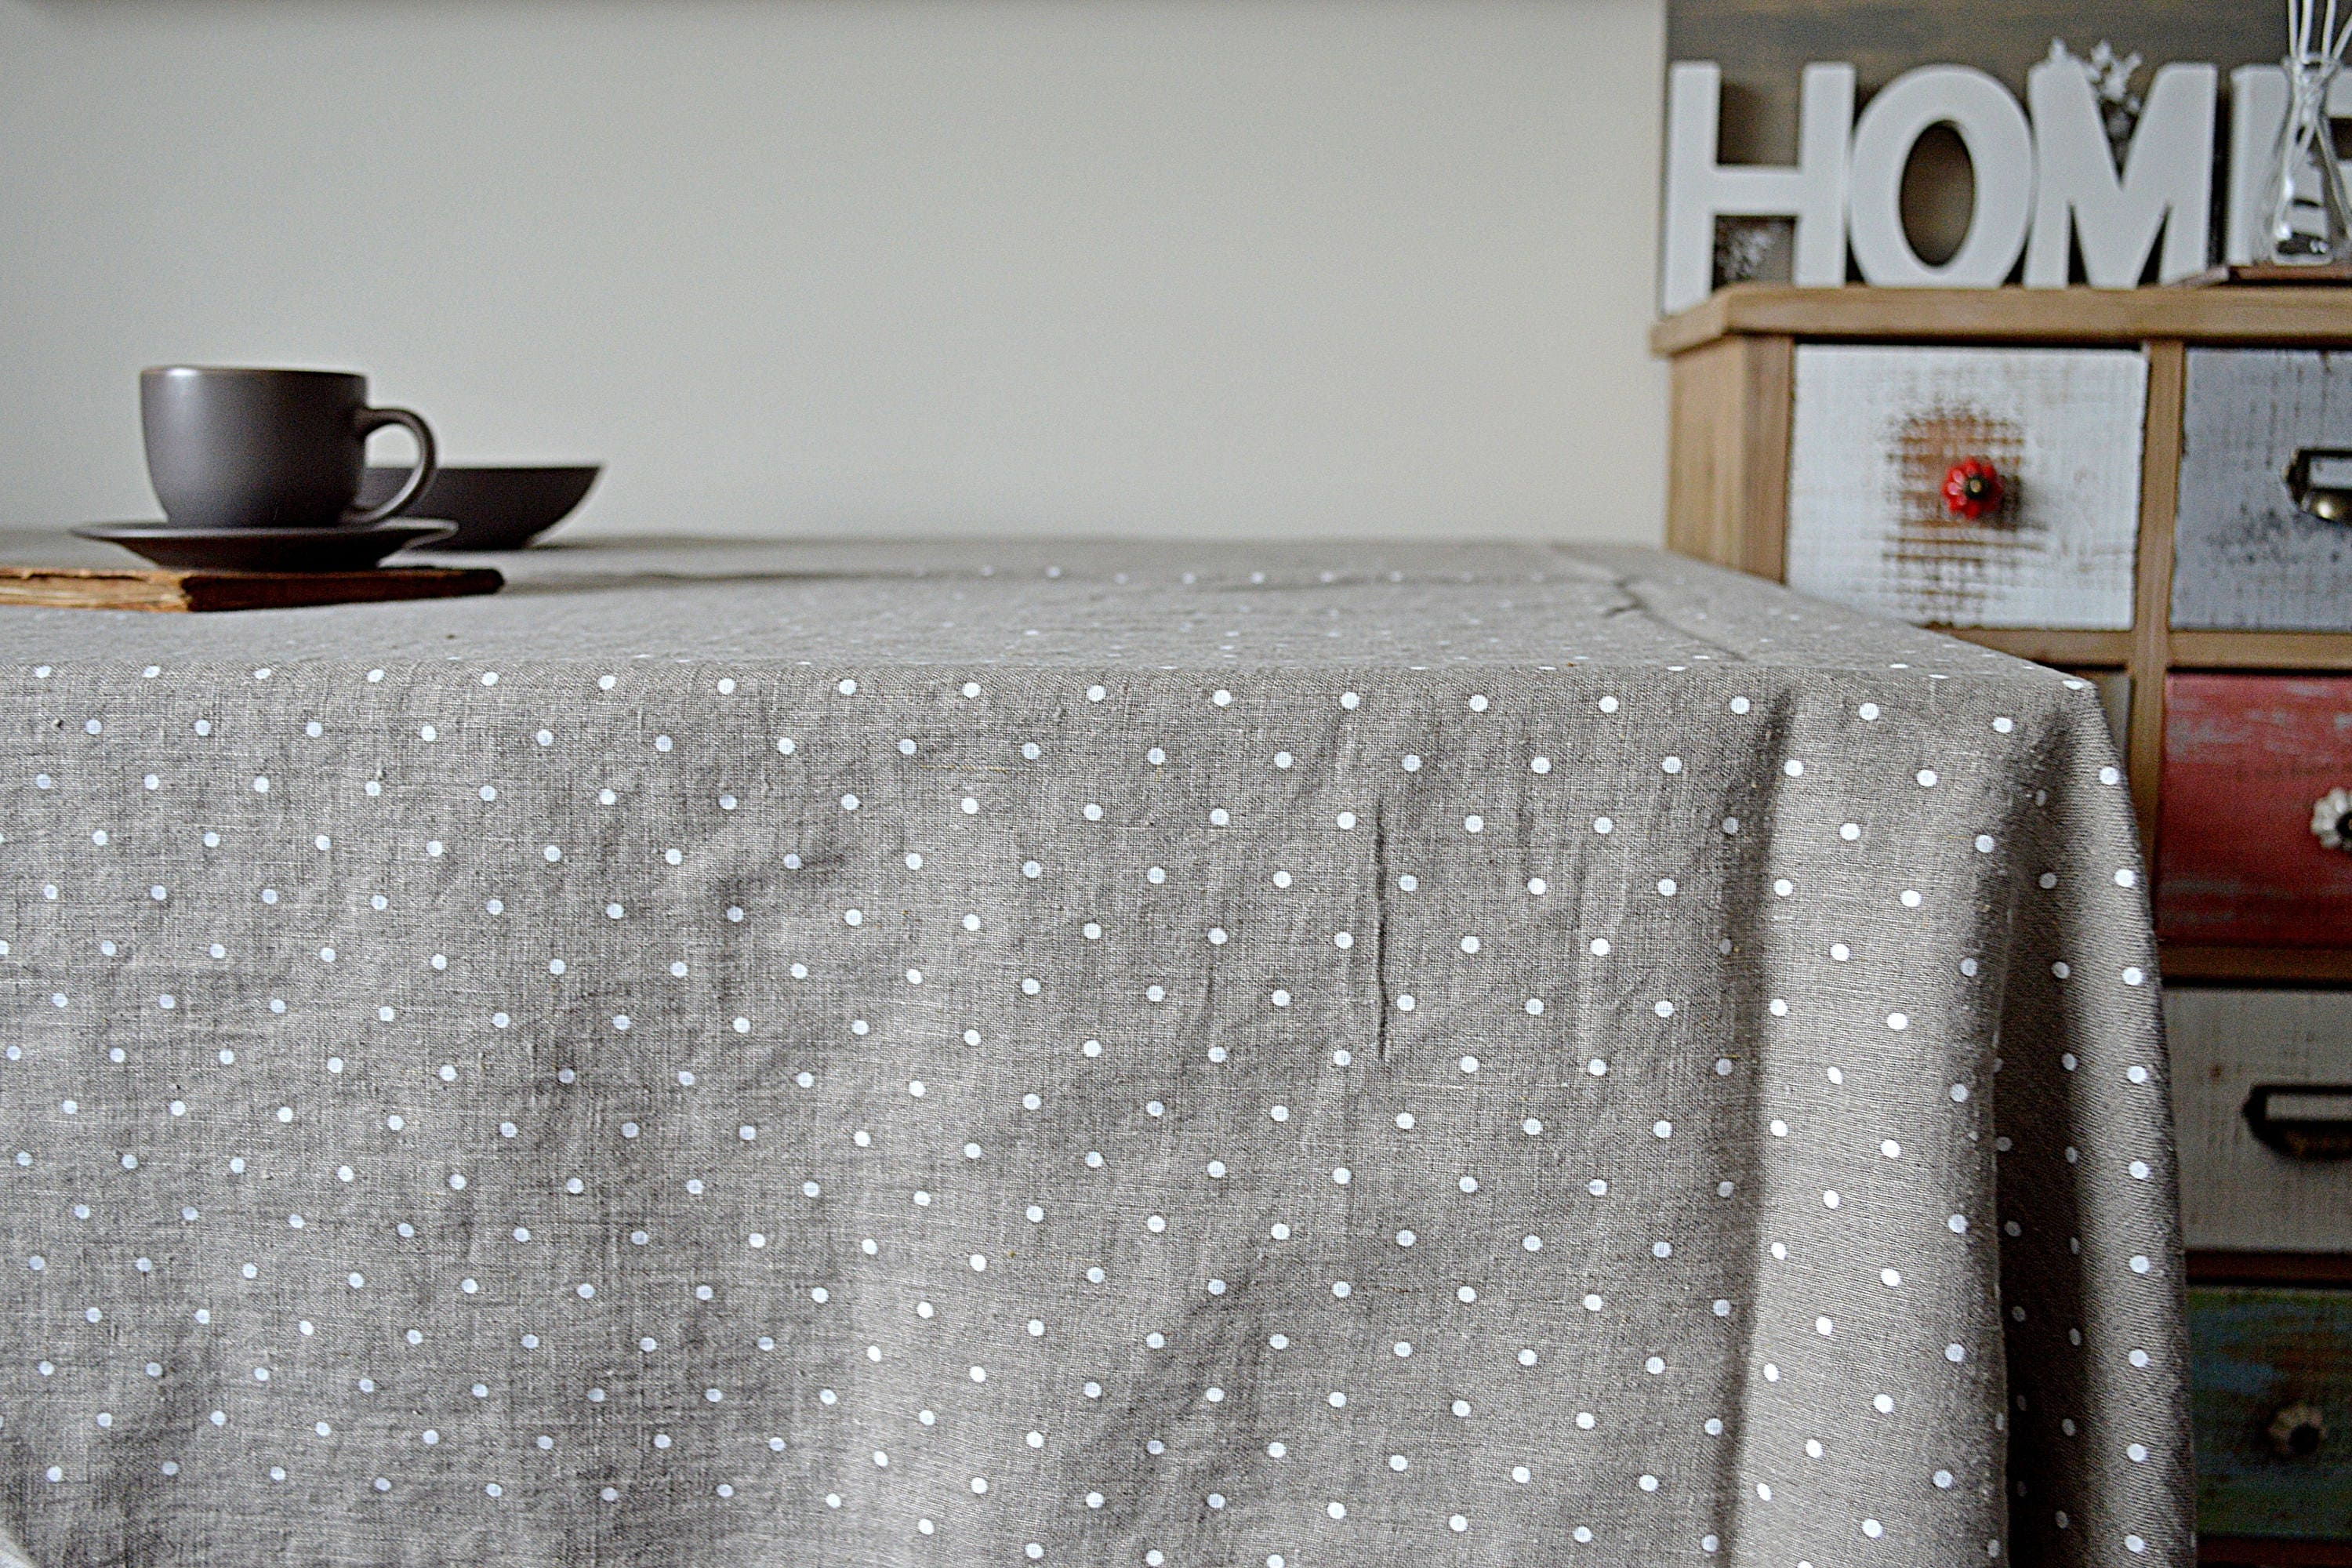 Natural Linen Tablecloth   Polka Dots Tablecloth With Mitered Corners    Simple Rustic Linen Tablecloth   Stonewashed Linen Tablecloth